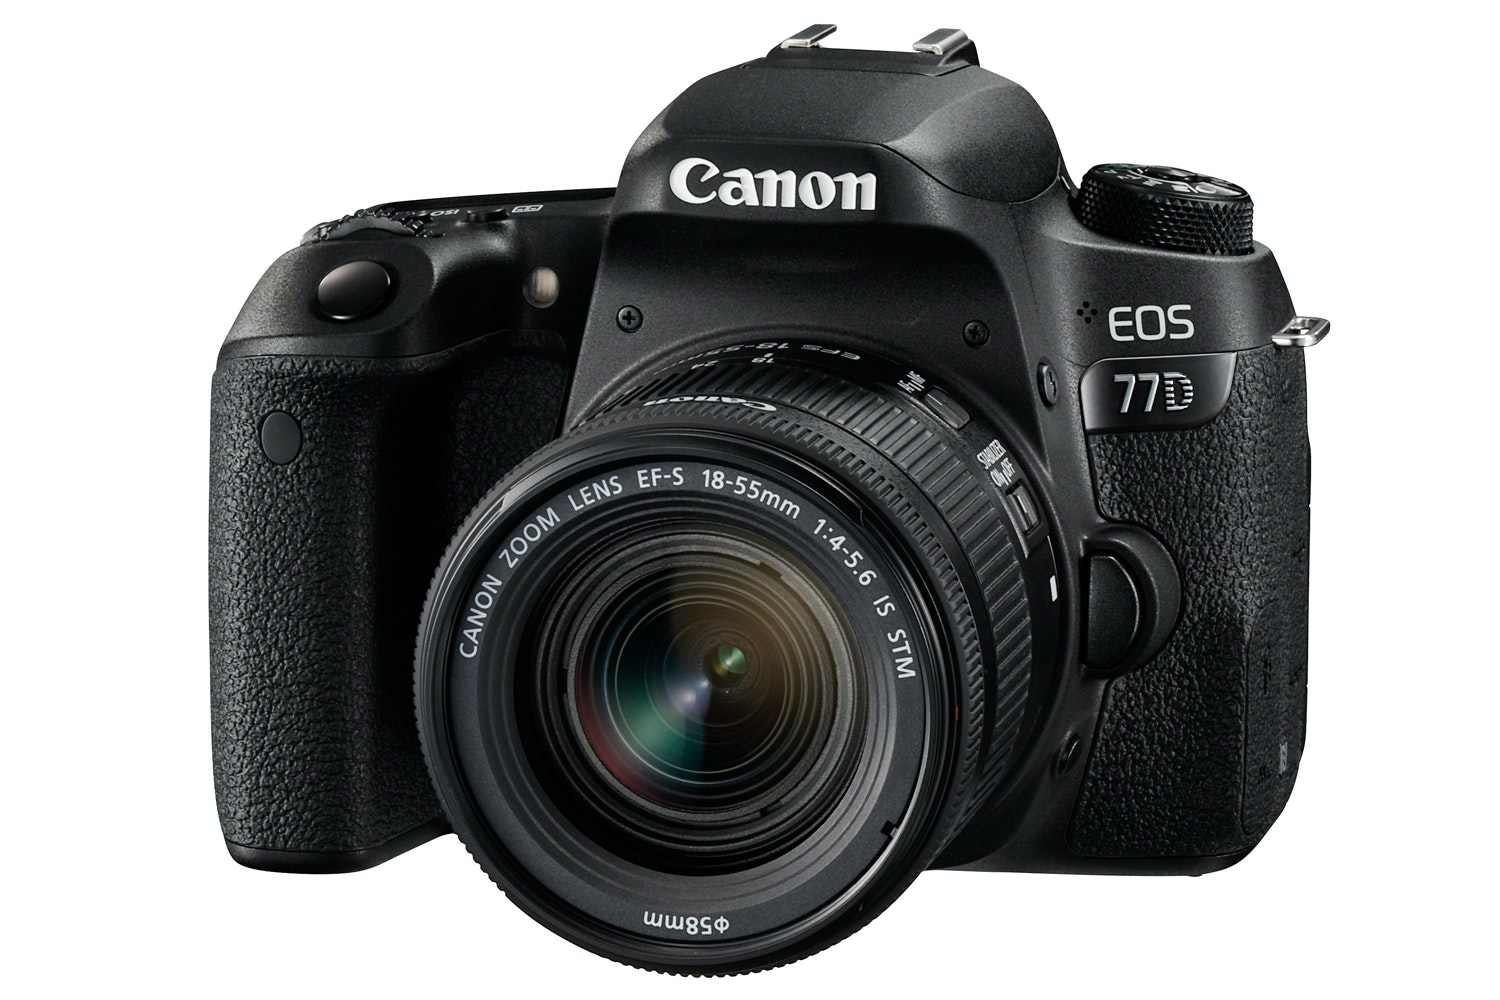 Canon EOS 77D & 18-55mm IS STM Lens